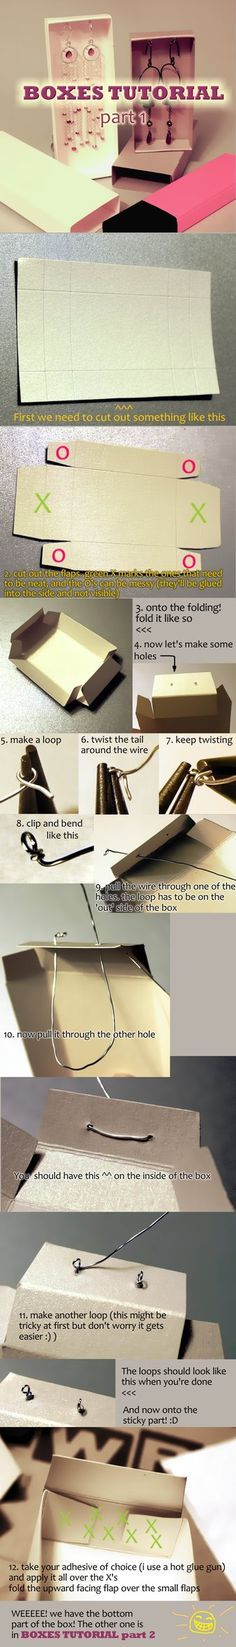 Tutorial - jewelry boxes by IMNIUM on DeviantArt